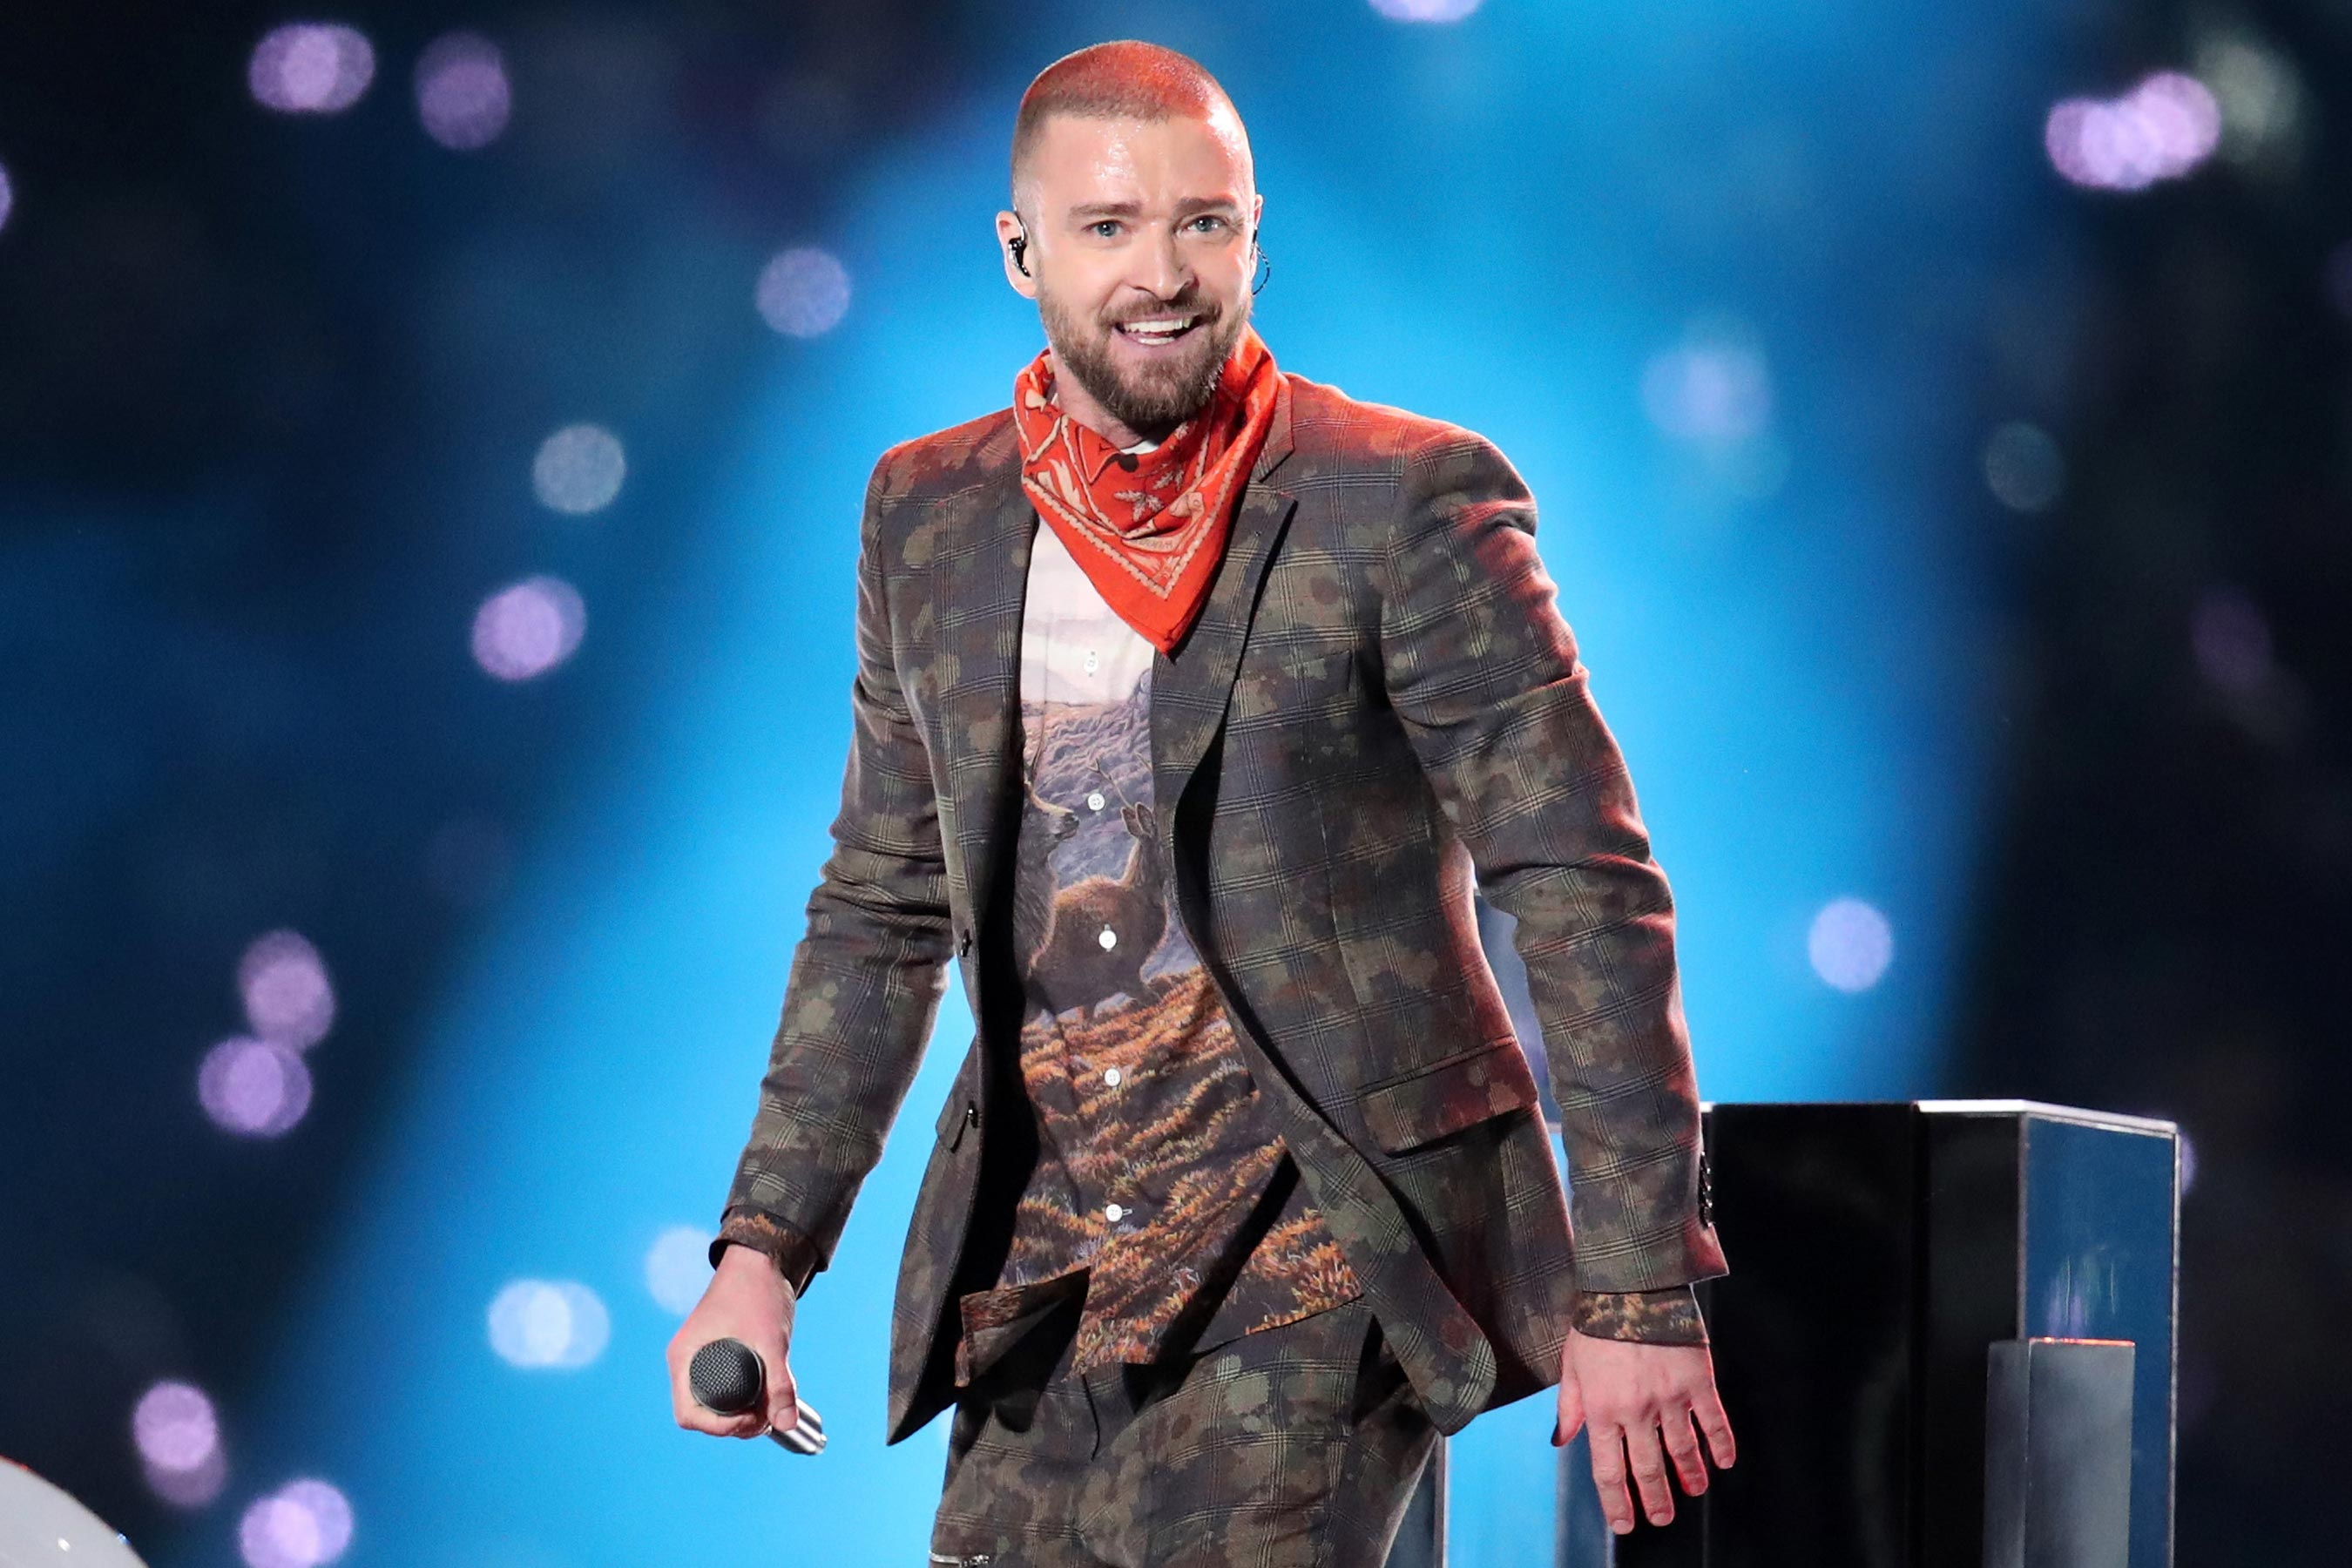 Justin Timberlake's Super Bowl halftime show review: Dutiful and empty